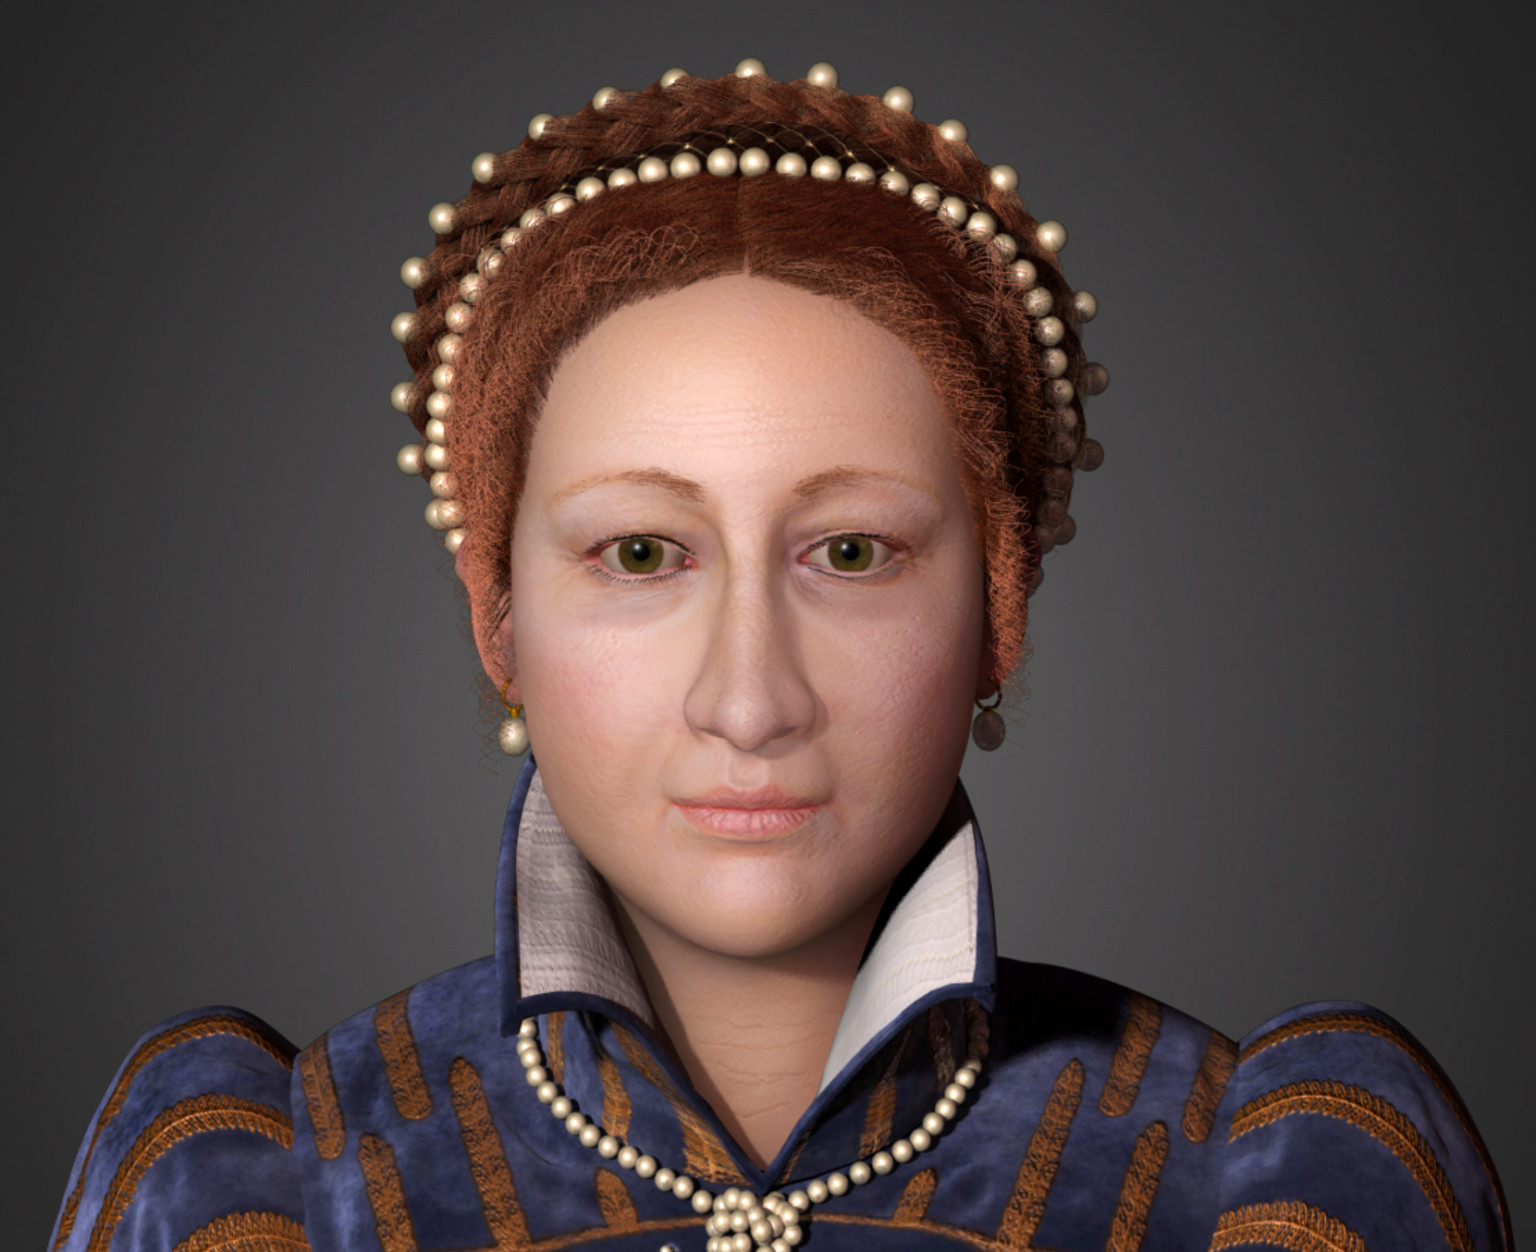 Mary, Queen of Scots: ...